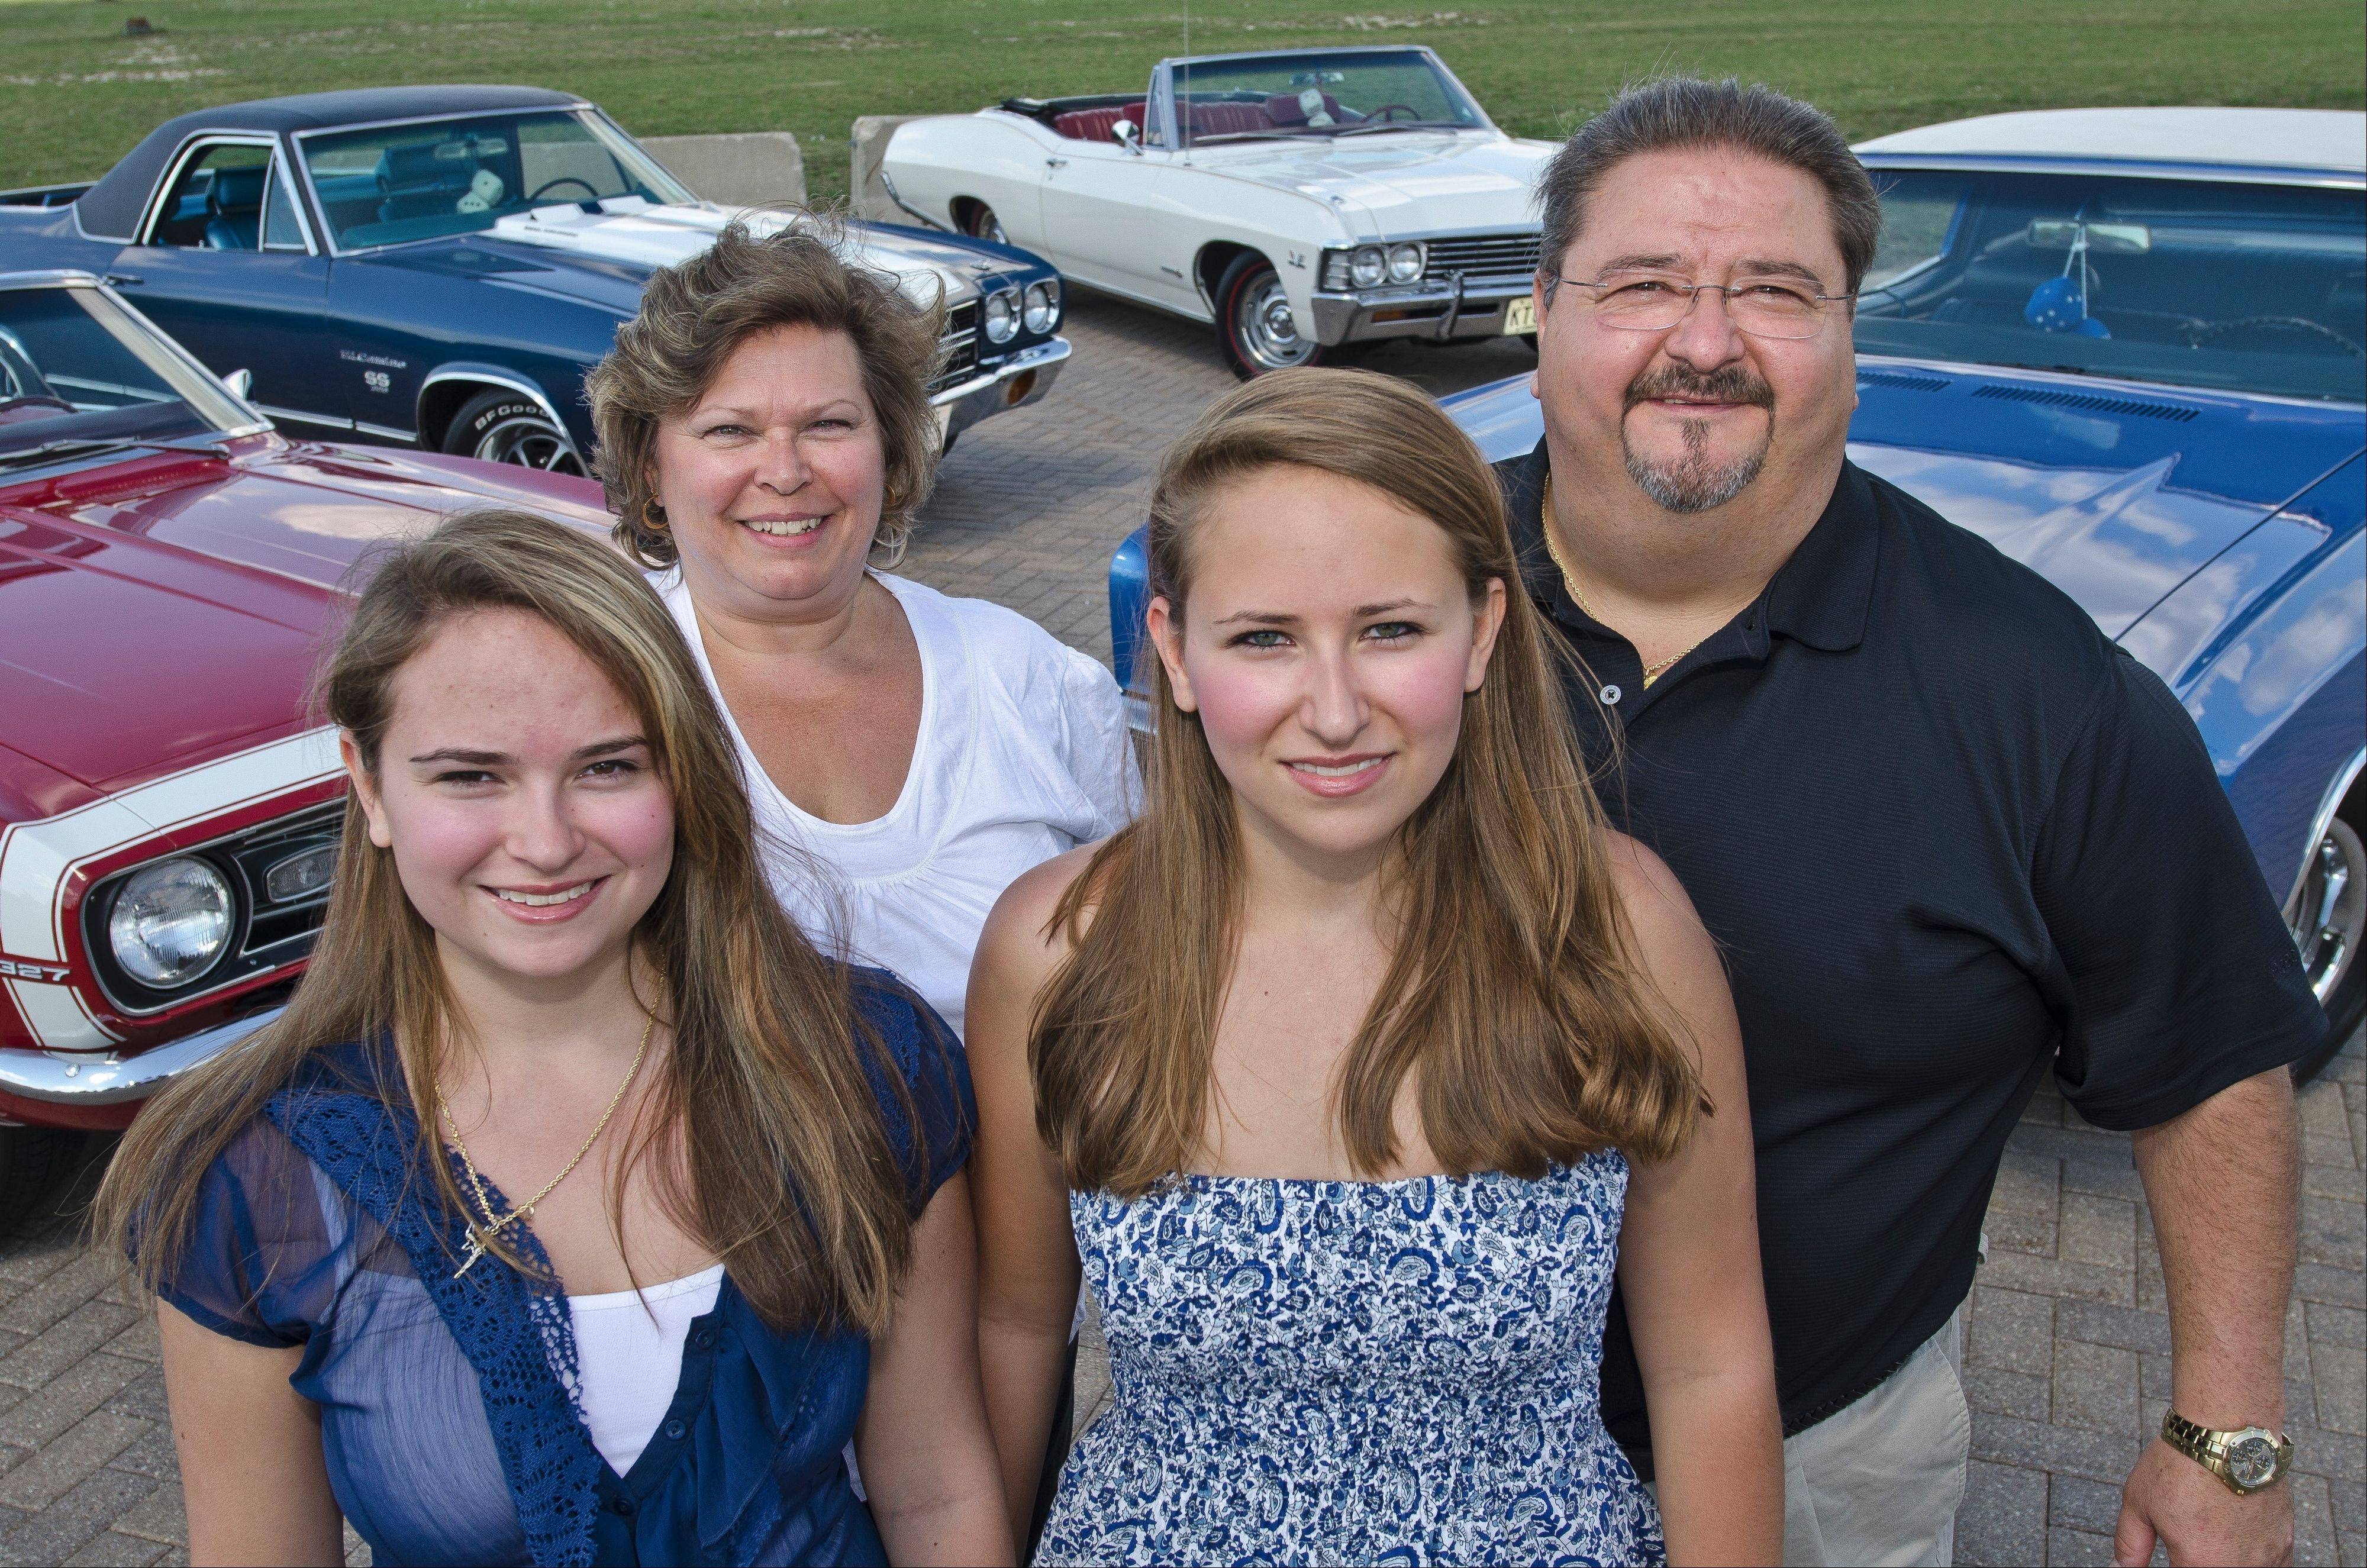 The Porzak family of Hoffman Estates shares a love of vintage Chevrolet muscle. Parents Darlene and Tom and their twin daughters Jenny, left, and Kristin drive the family Chevy collection.